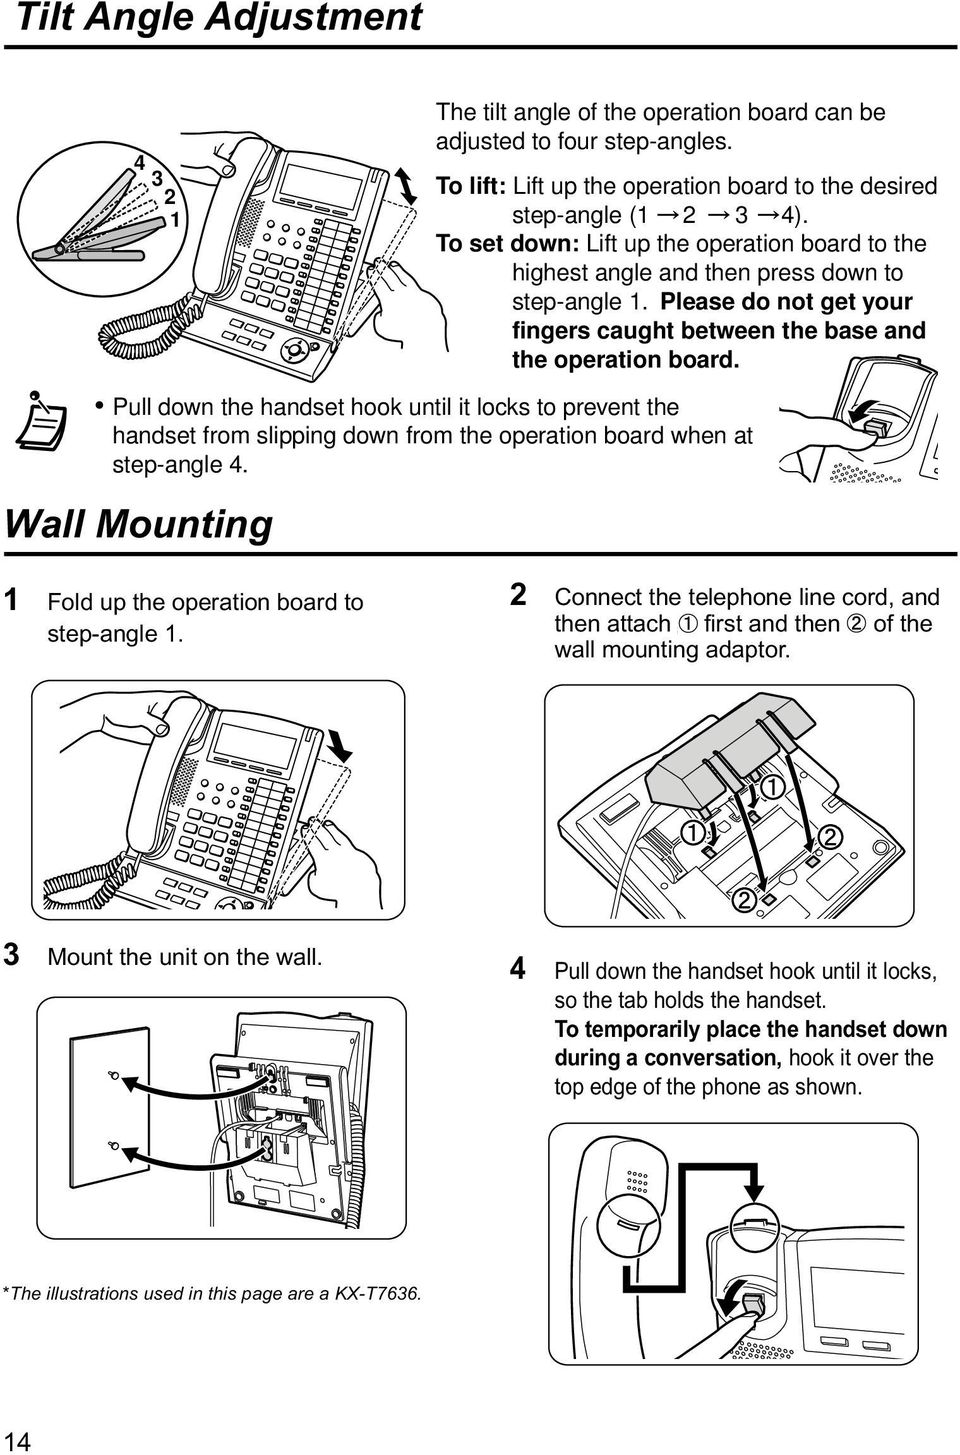 Pull down the handset hook until it locks to prevent the handset from slipping down from the operation board when at step-angle 4. Wall Mounting Fold up the operation board to step-angle.